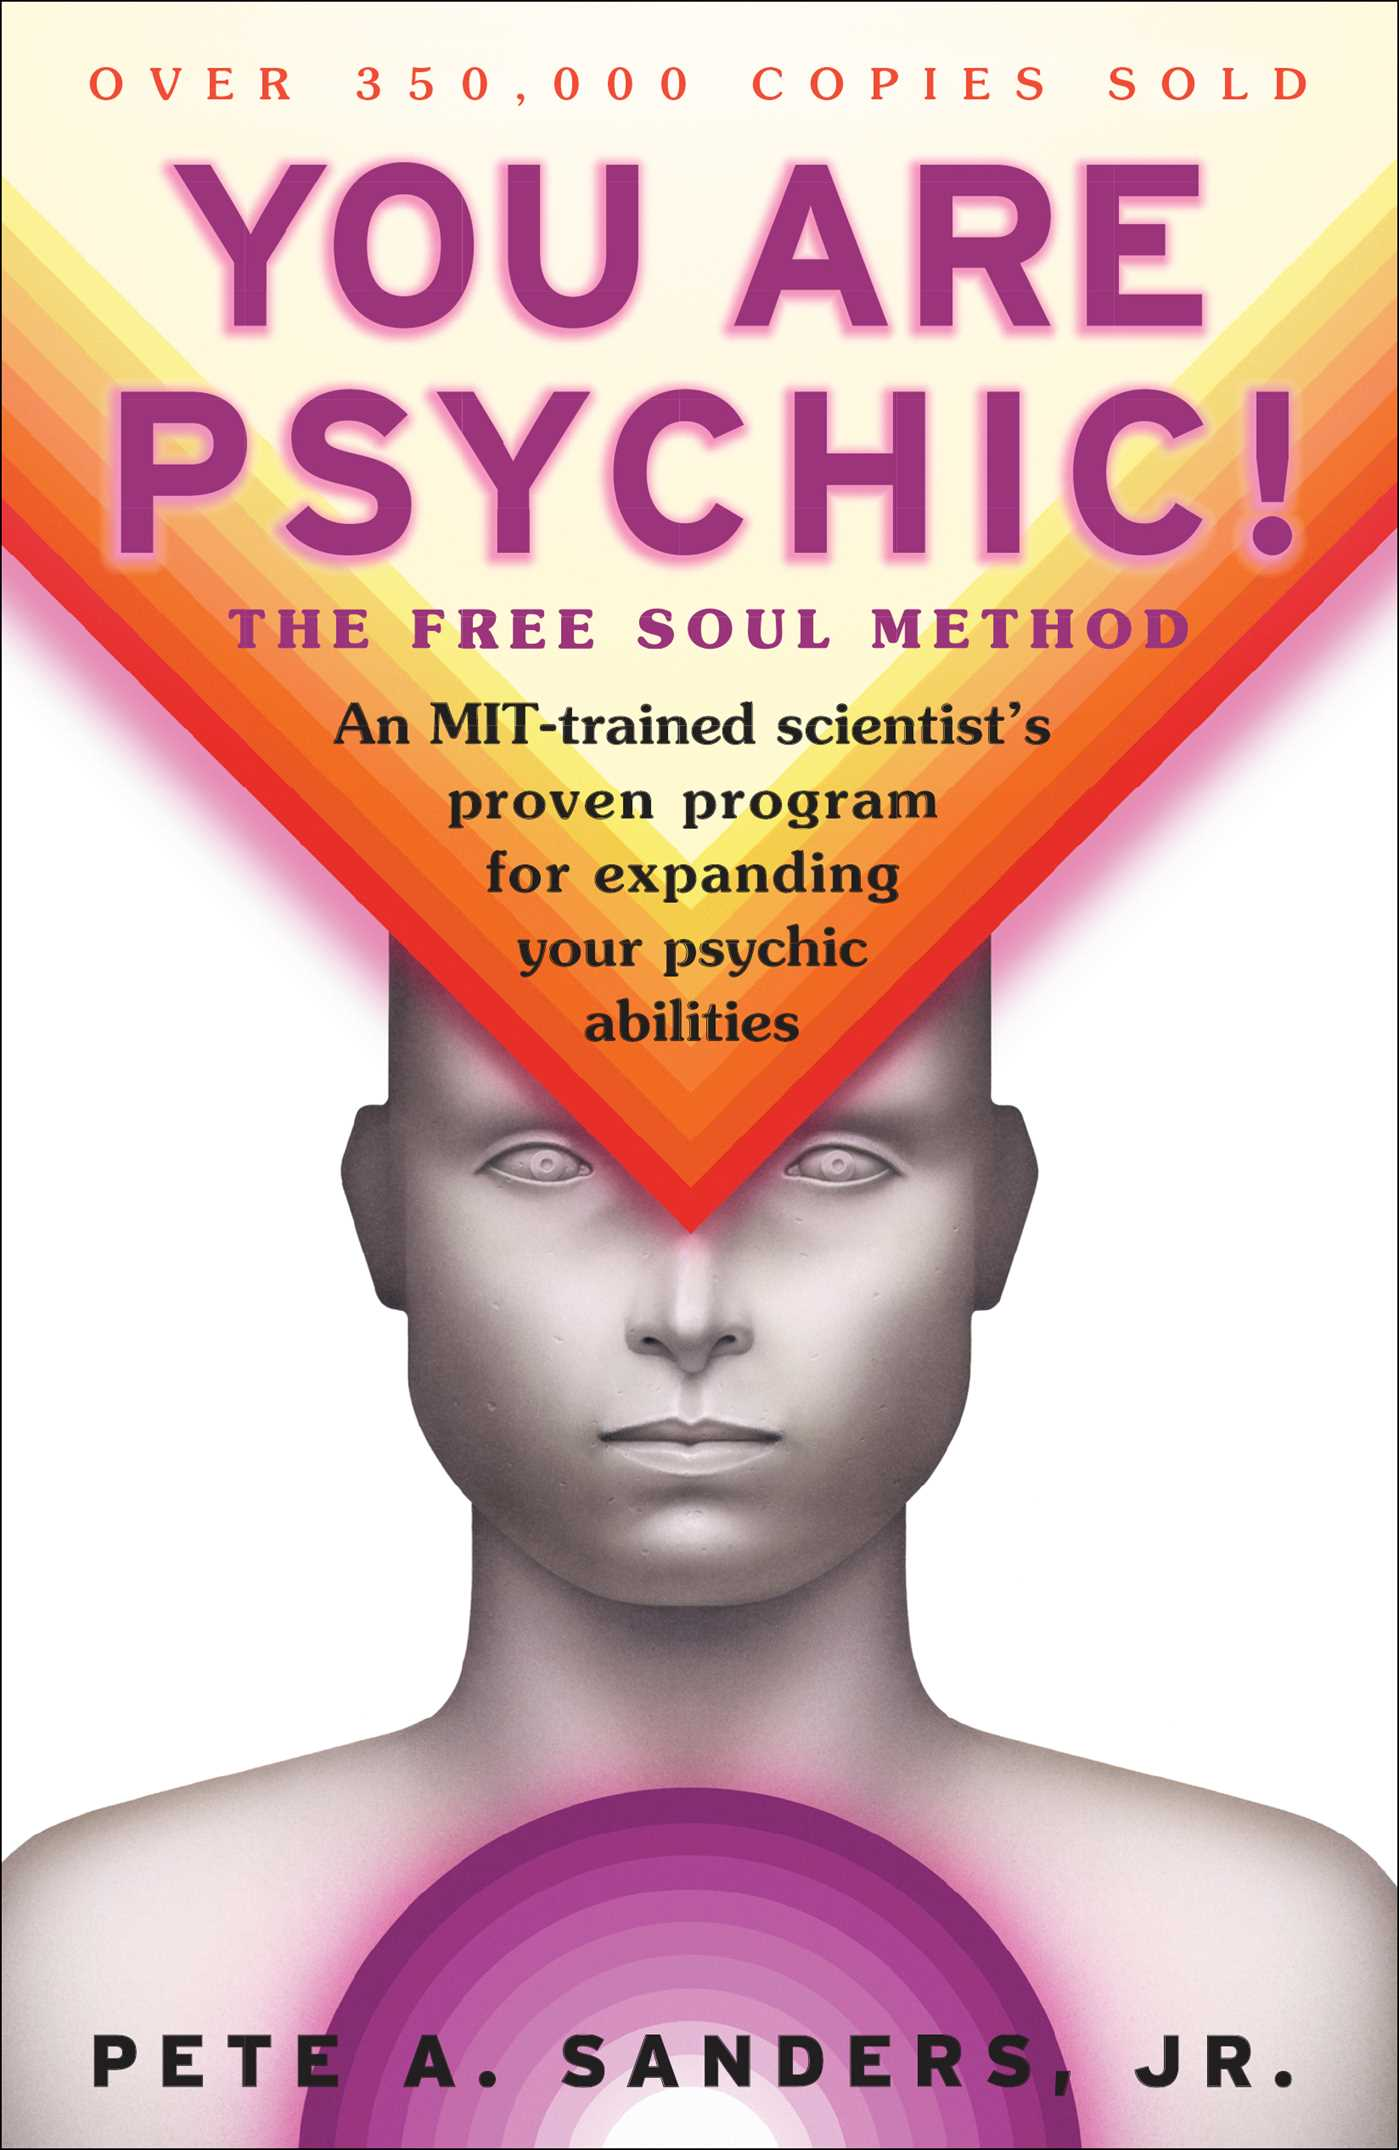 You are psychic 9780684857046 hr